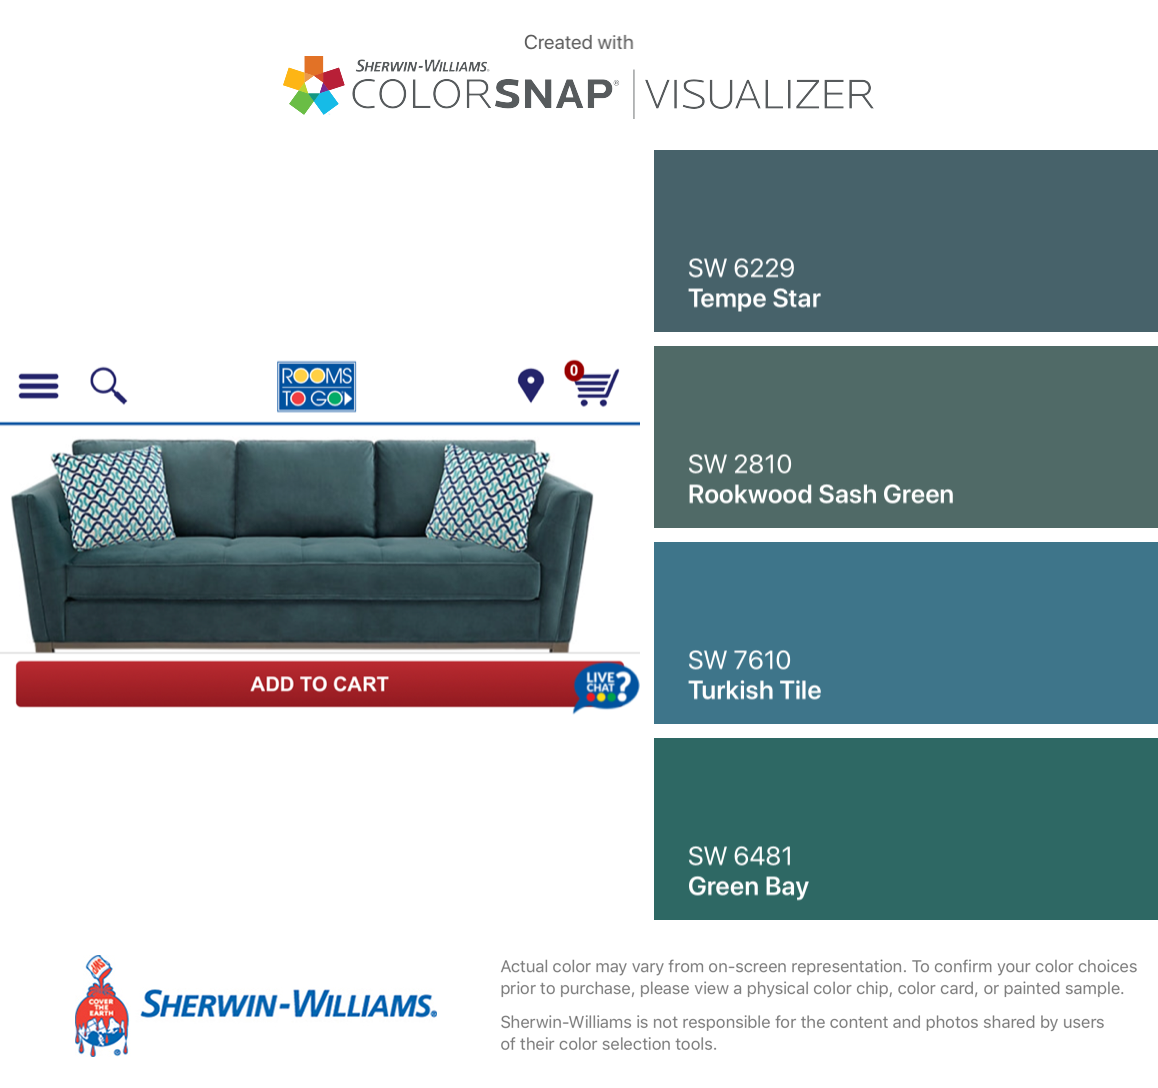 I Found These Colors With Colorsnap Visualizer For Iphone By Sherwin Williams Tempe Star Sw 6229 Rookwood Sash Green Turkish Tile Sherwin Williams Sherwin